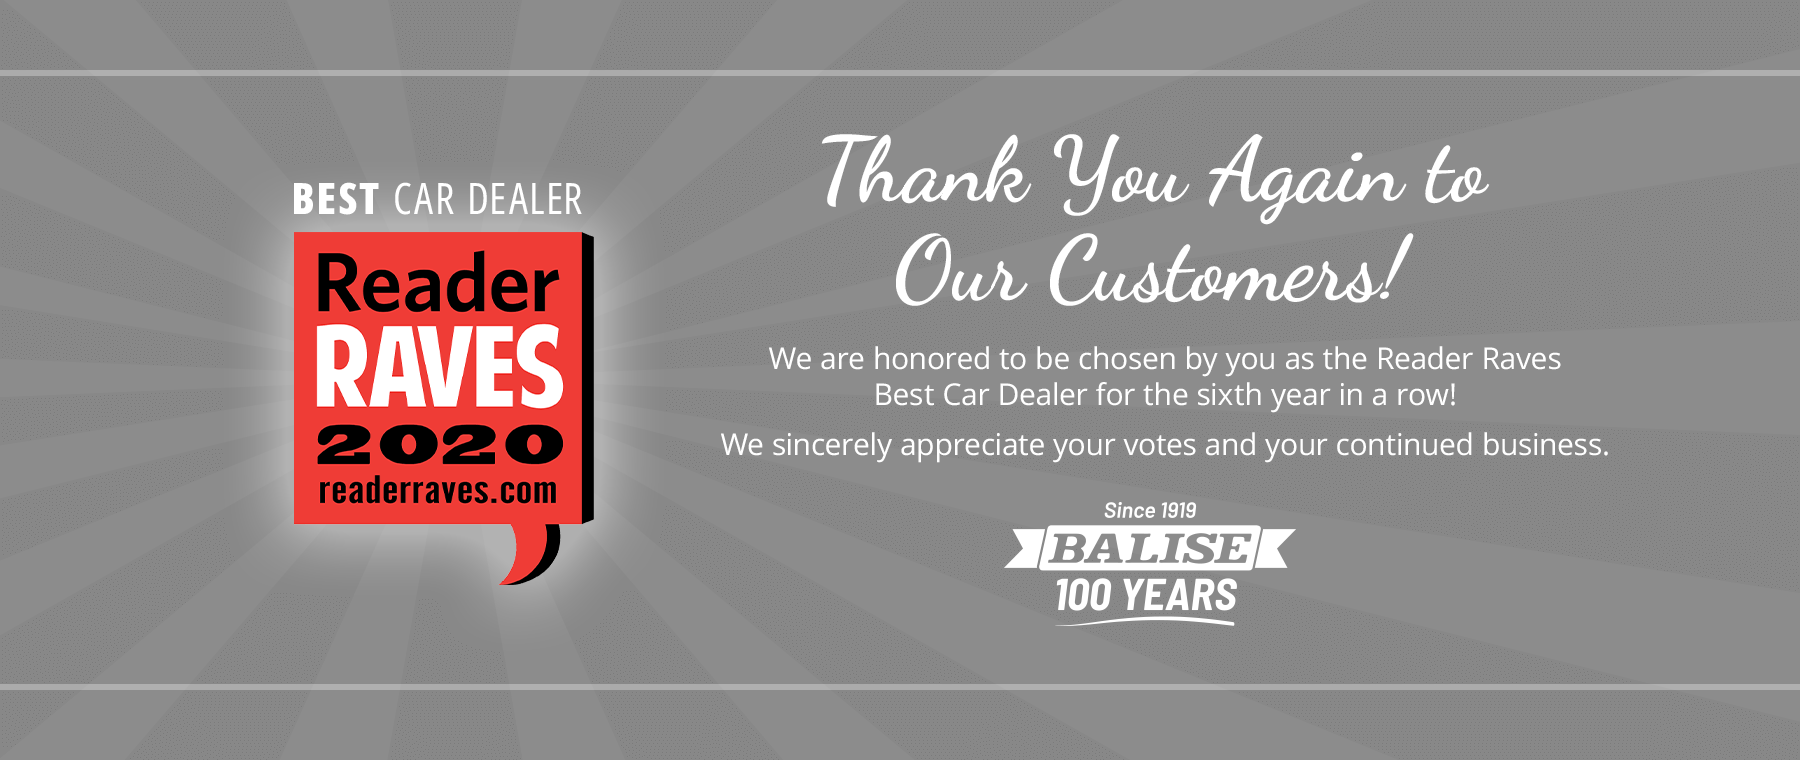 Best Car Dealer 2020 - Thank you to our customers